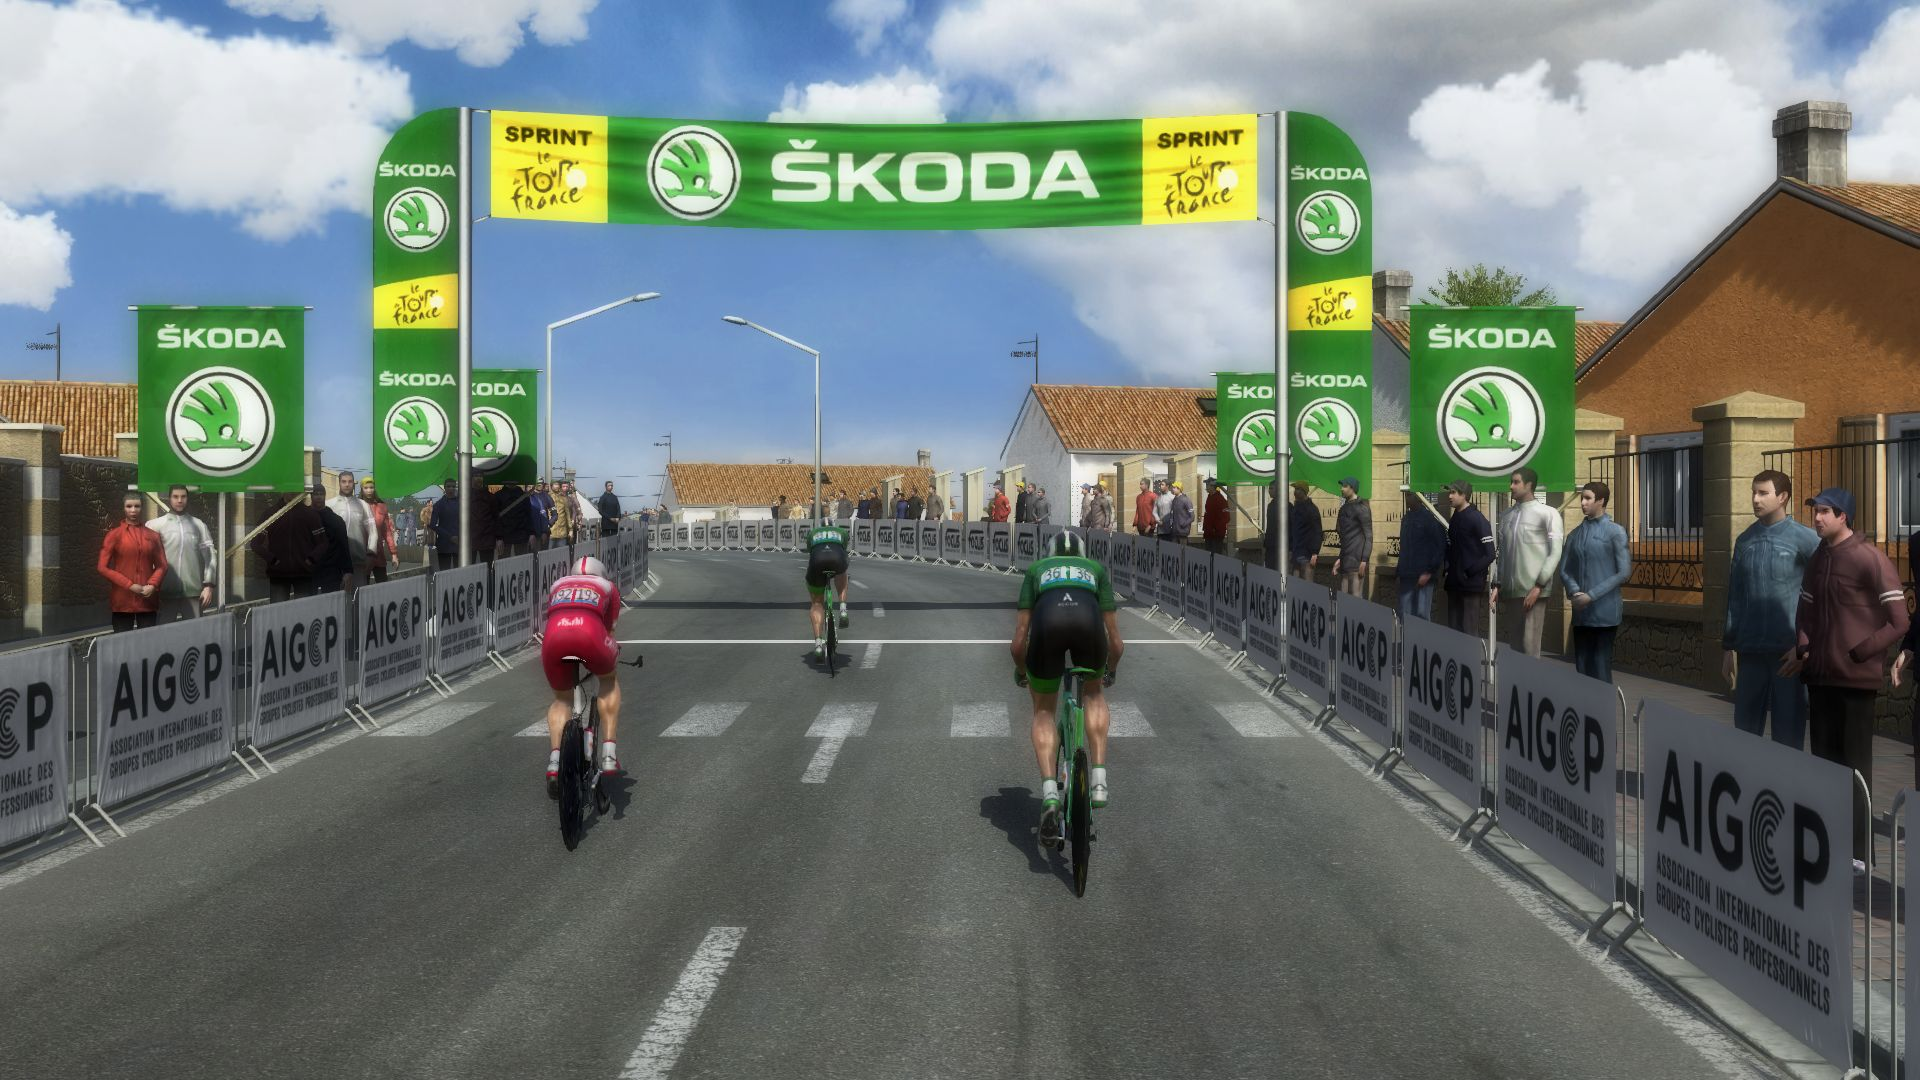 pcmdaily.com/images/mg/2019/Races/HC/Slovenie/mg19_slo_s04_06.jpg